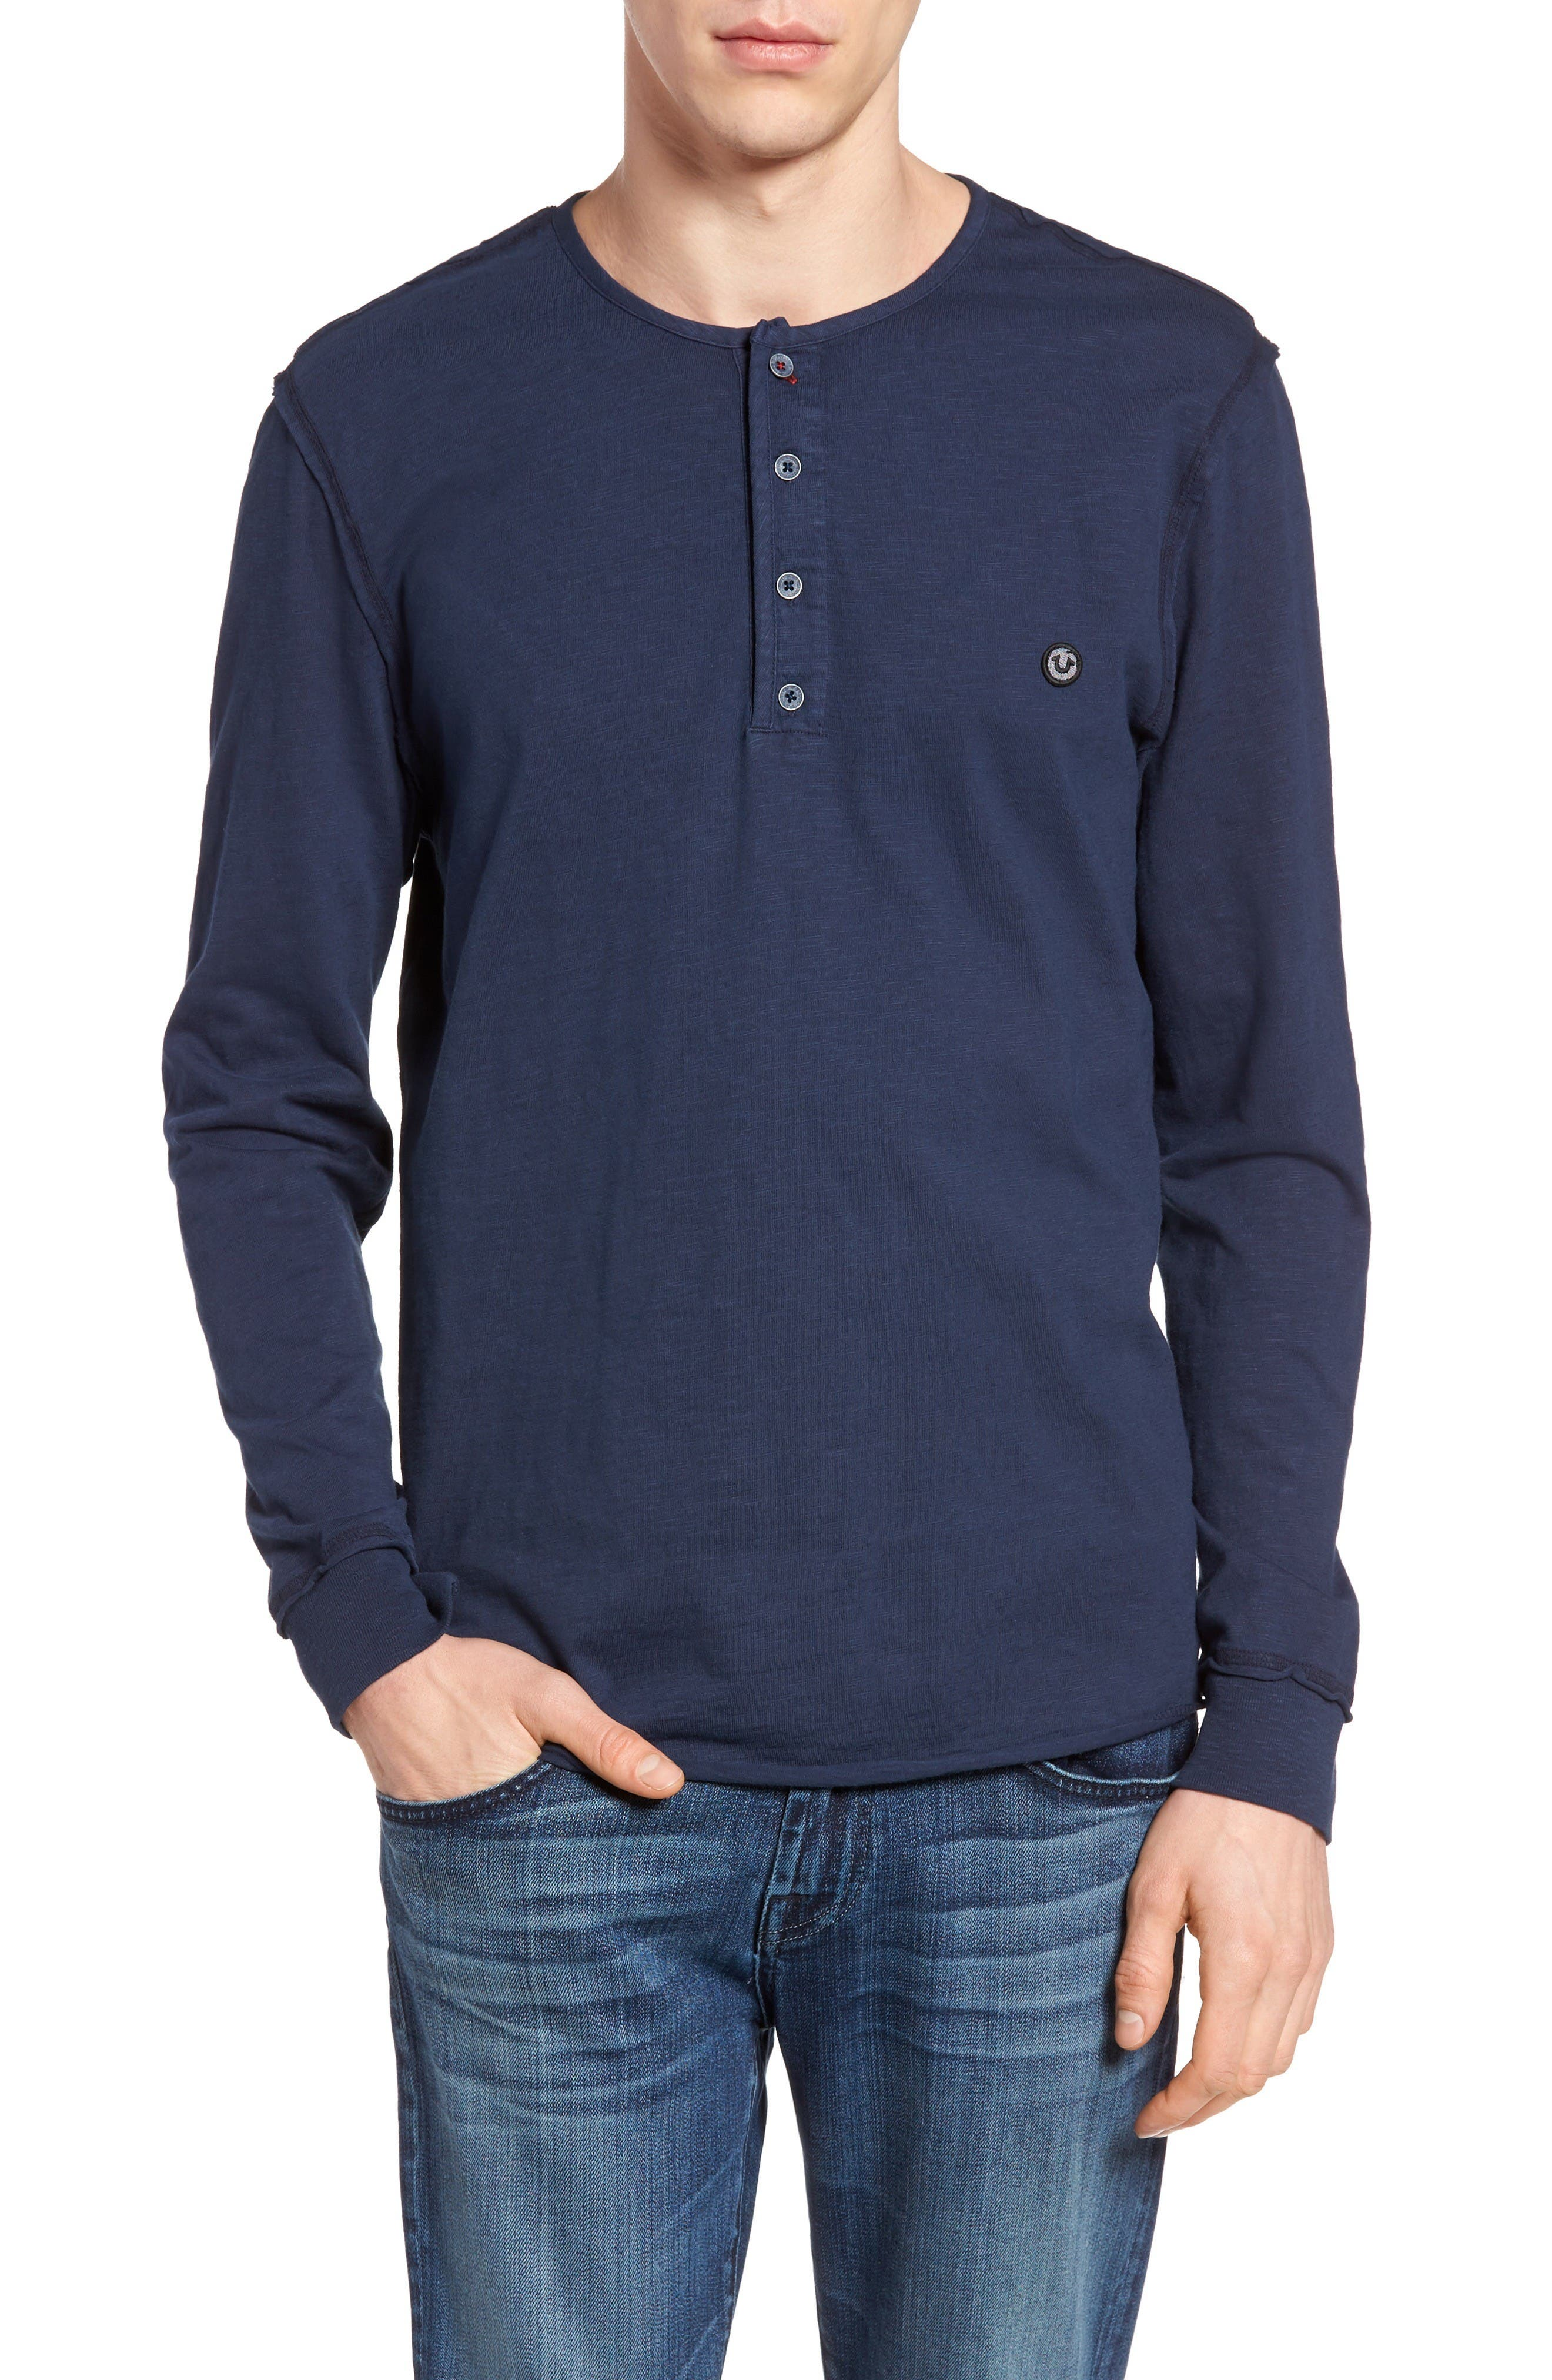 Alternate Image 1 Selected - True Religion Brand Jeans Raw Edge Henley